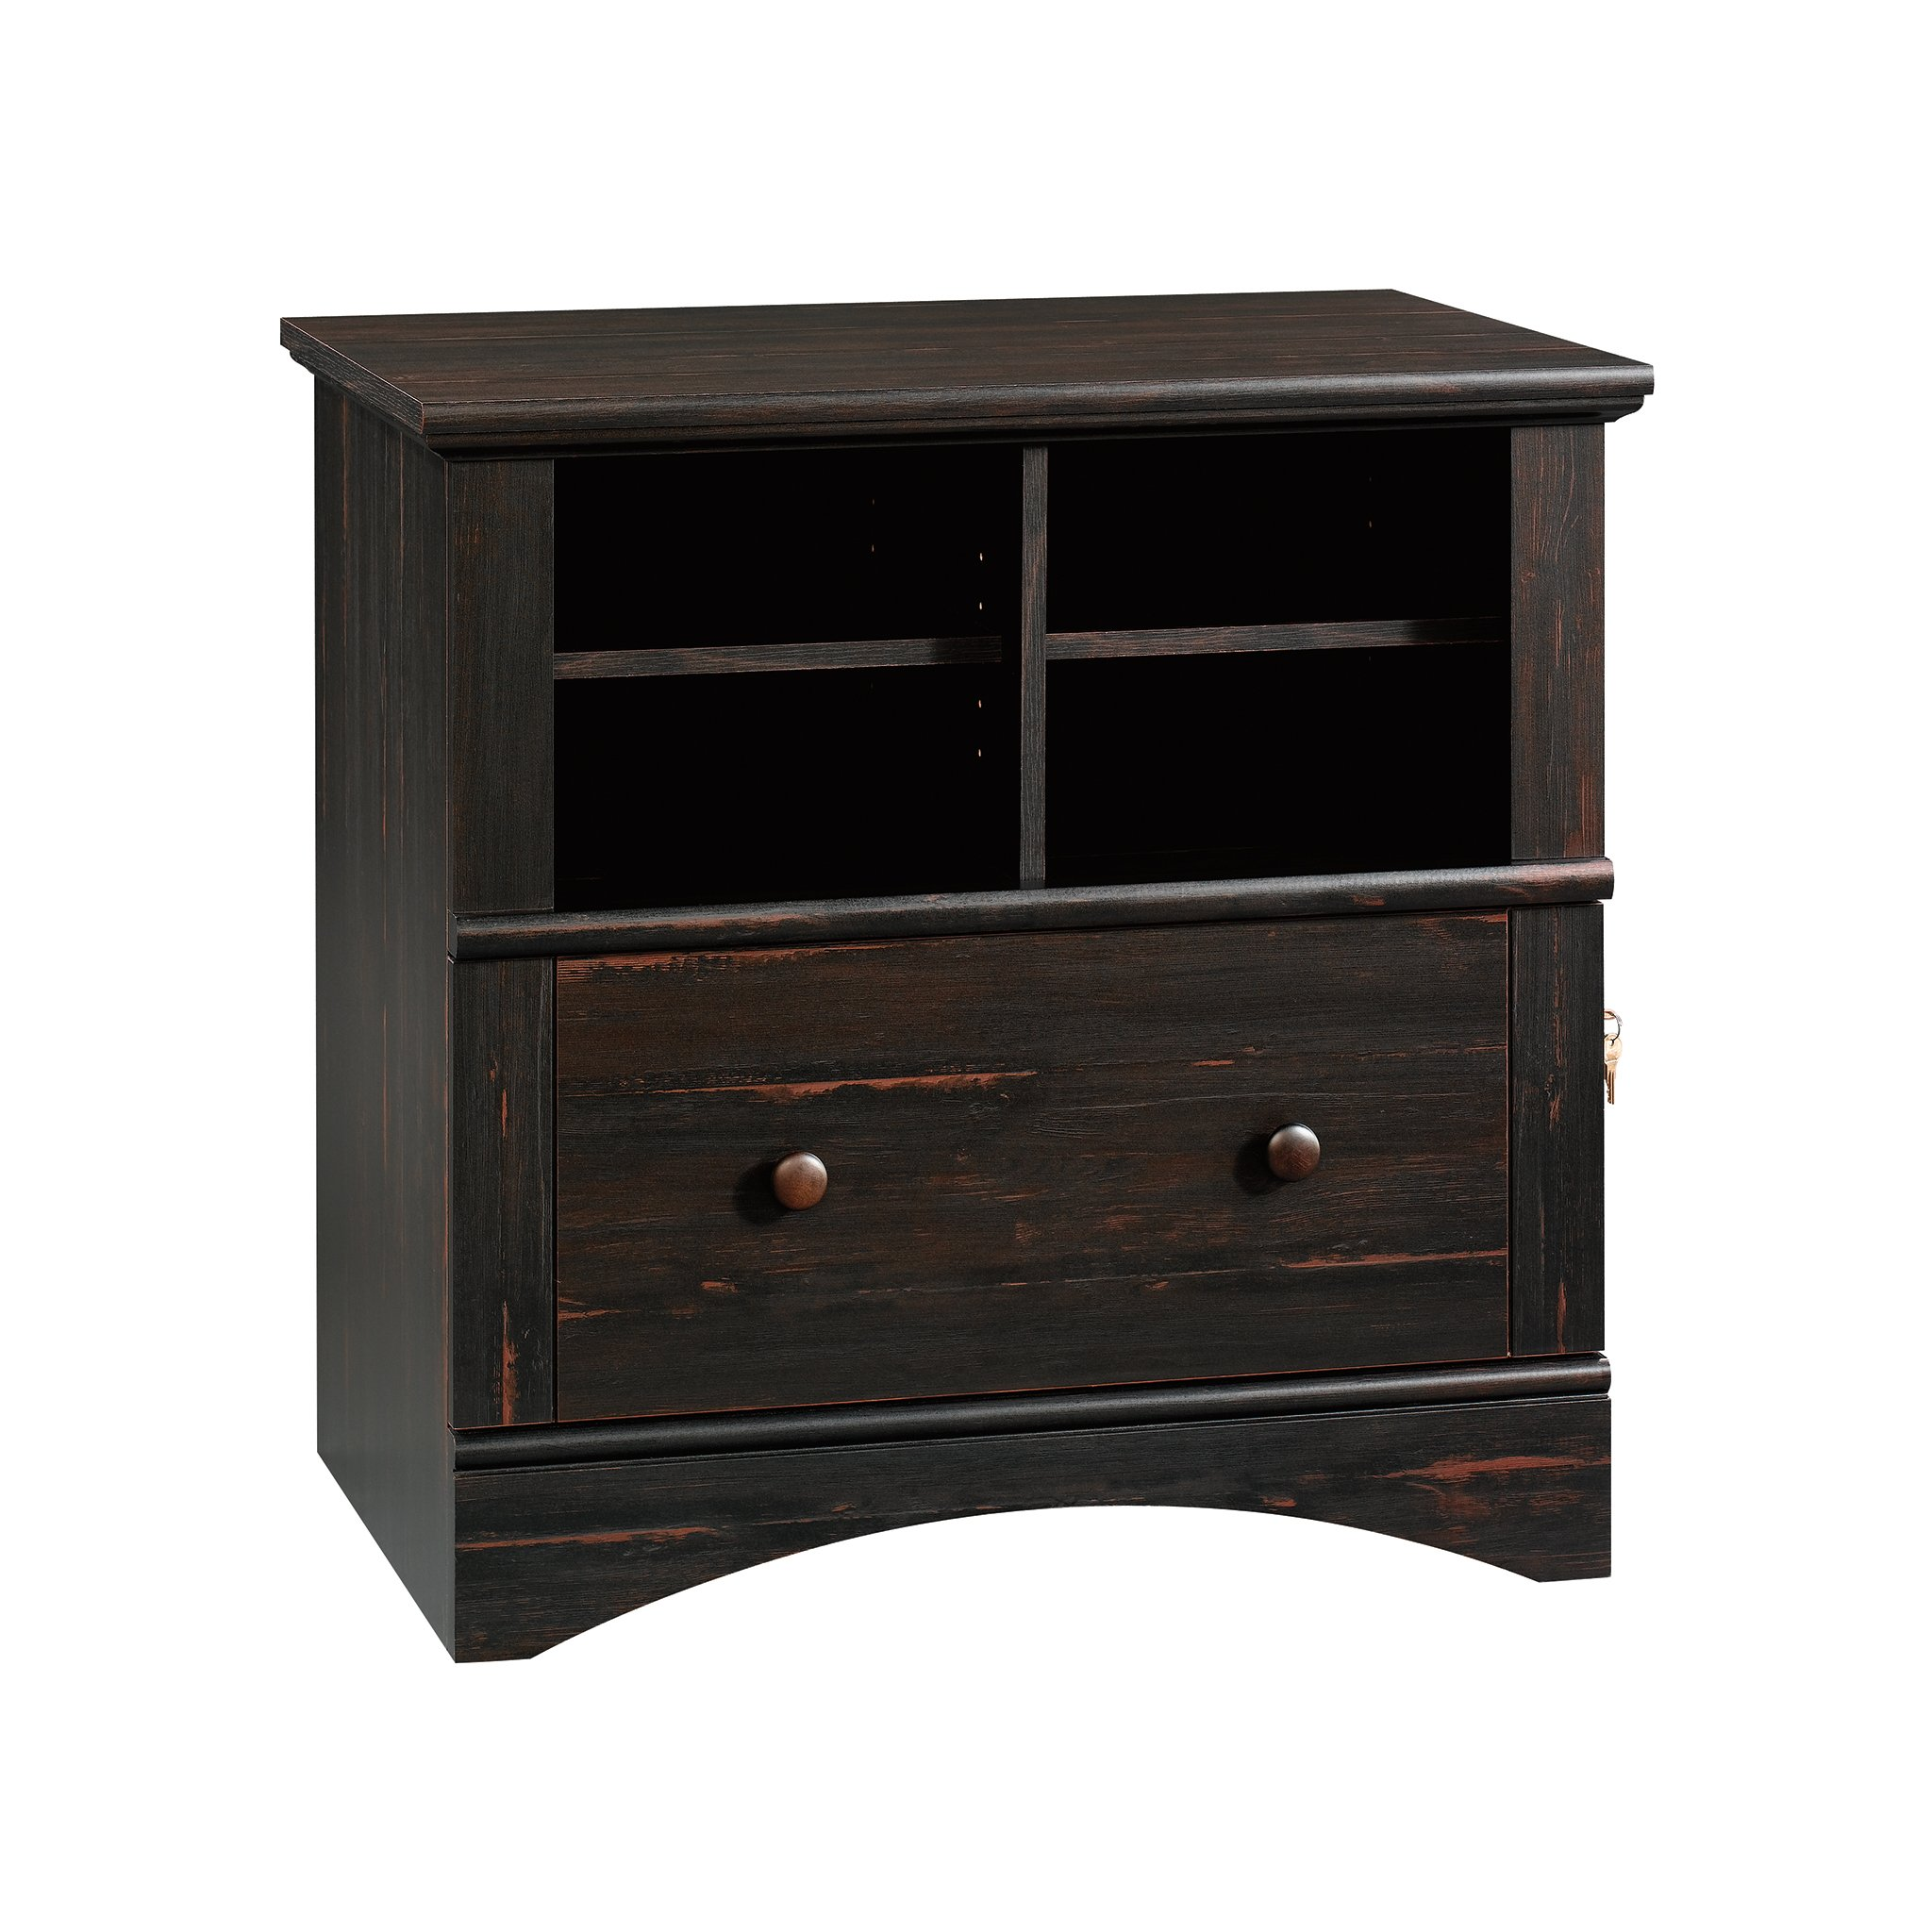 Details about Sauder Lateral File Cabinet Storage Antiqued Paint Finish  34.34x34.34x34.34 New